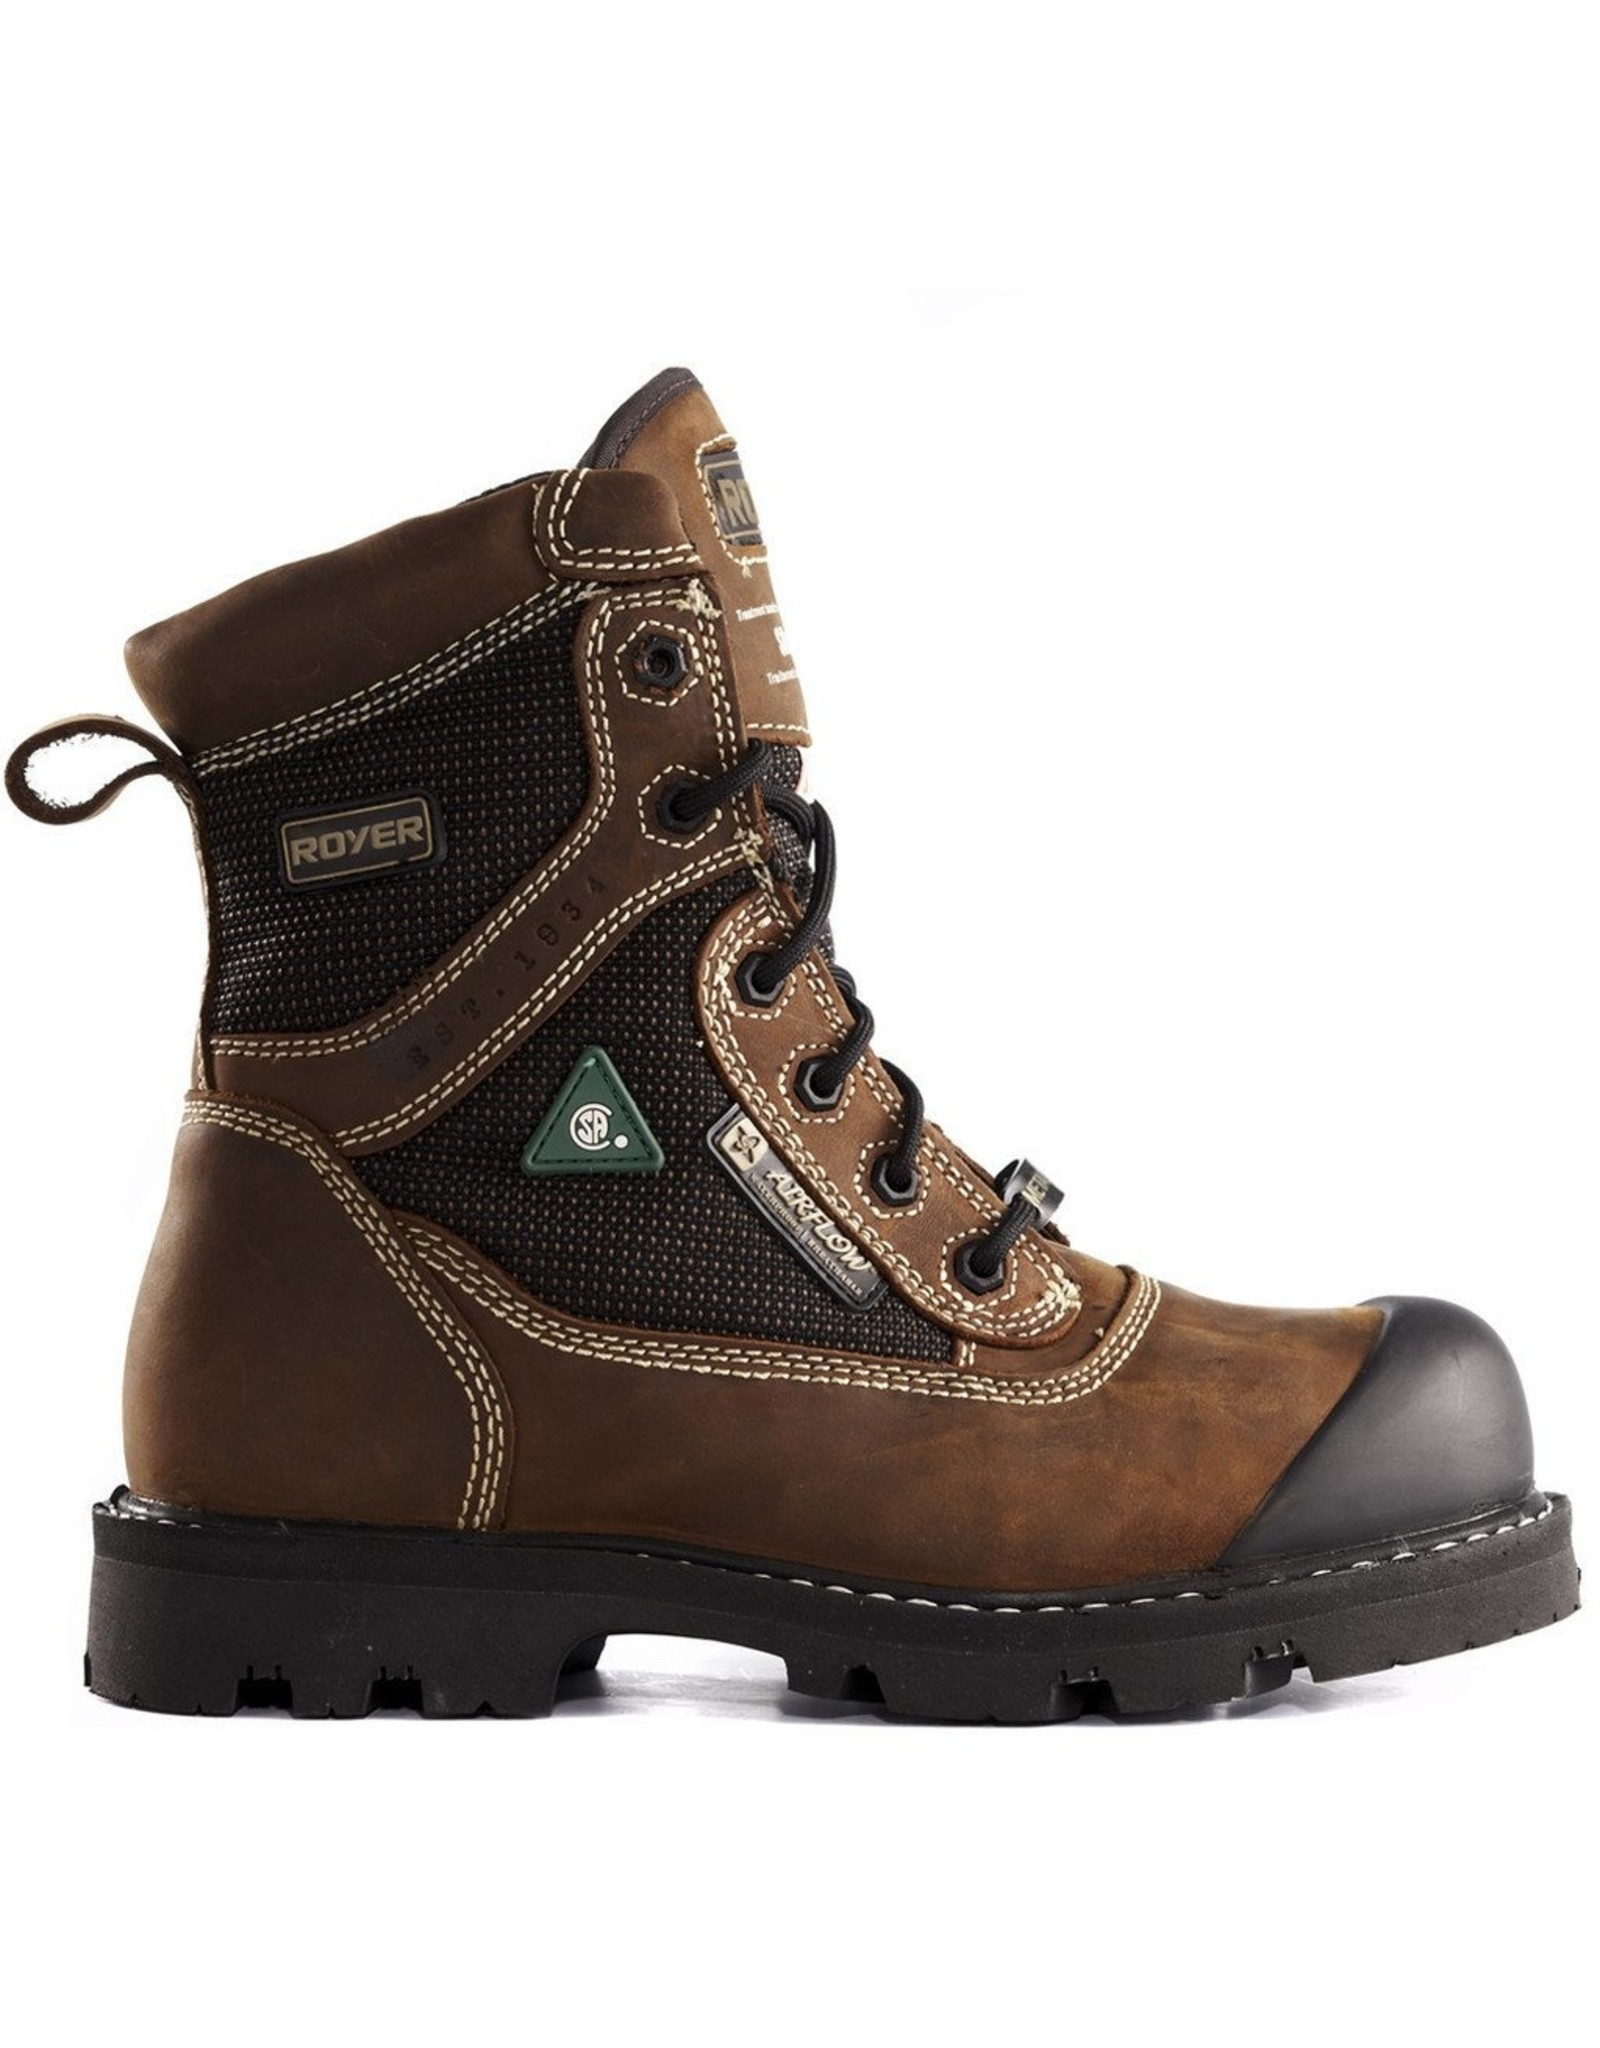 ROYER WORK BOOTS Royer 8620FLX Safety boot